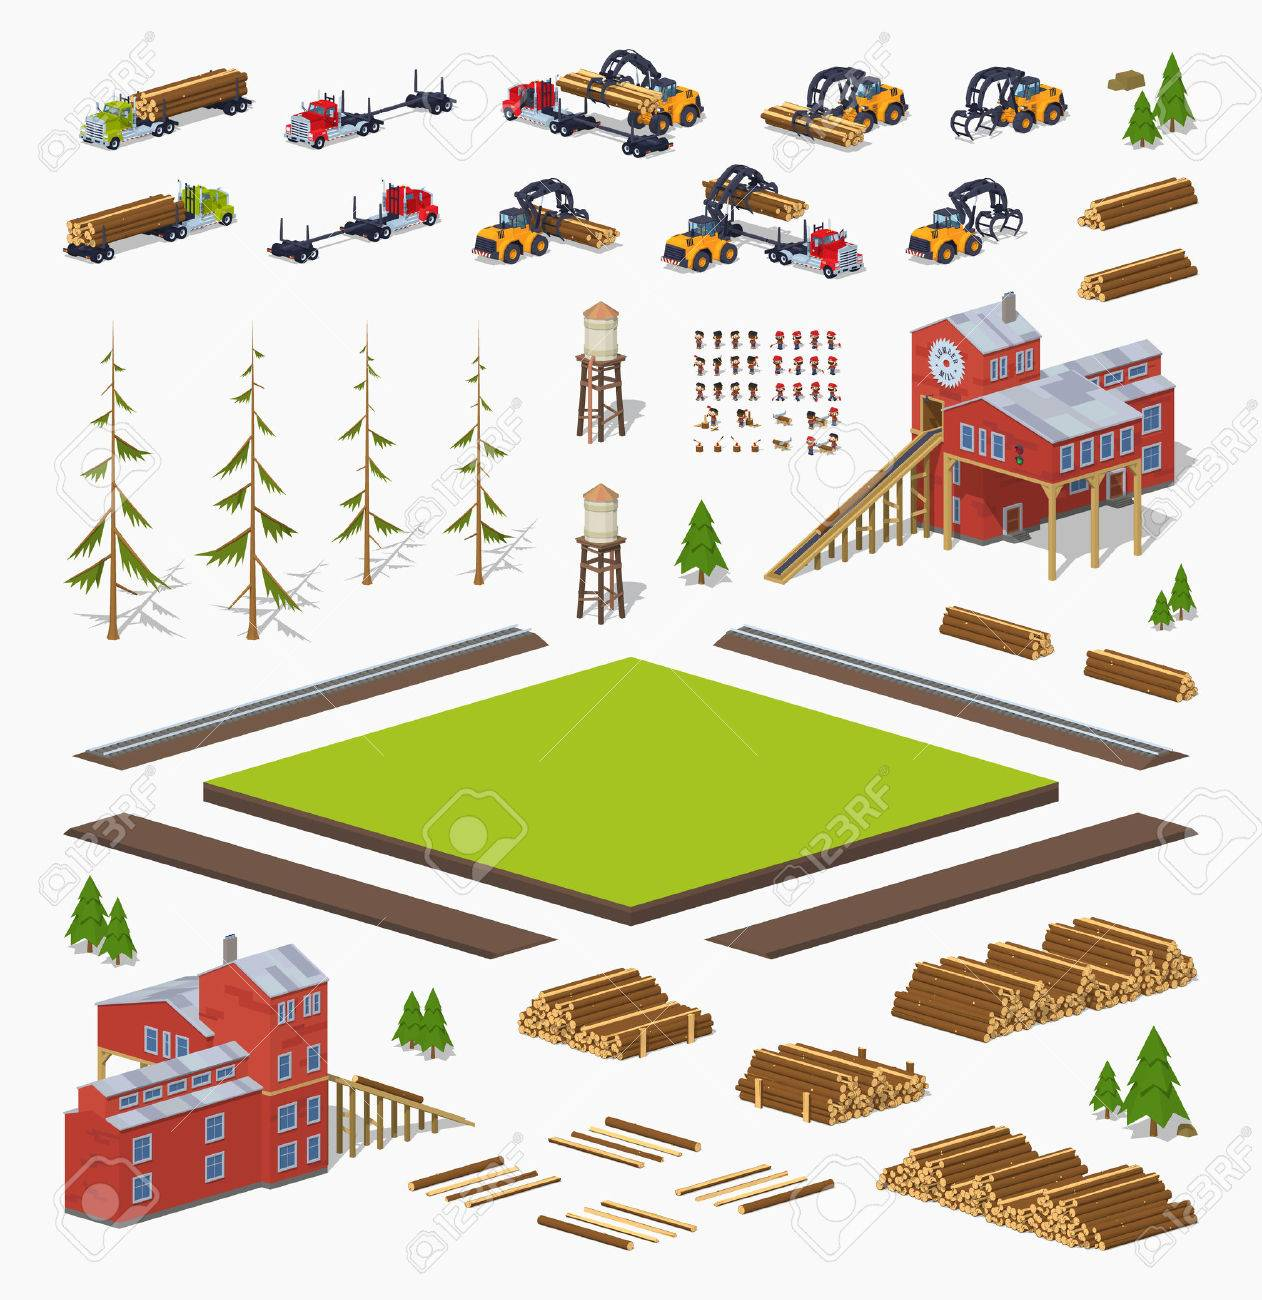 Lumber mill construction set. Build your own design - 53249528